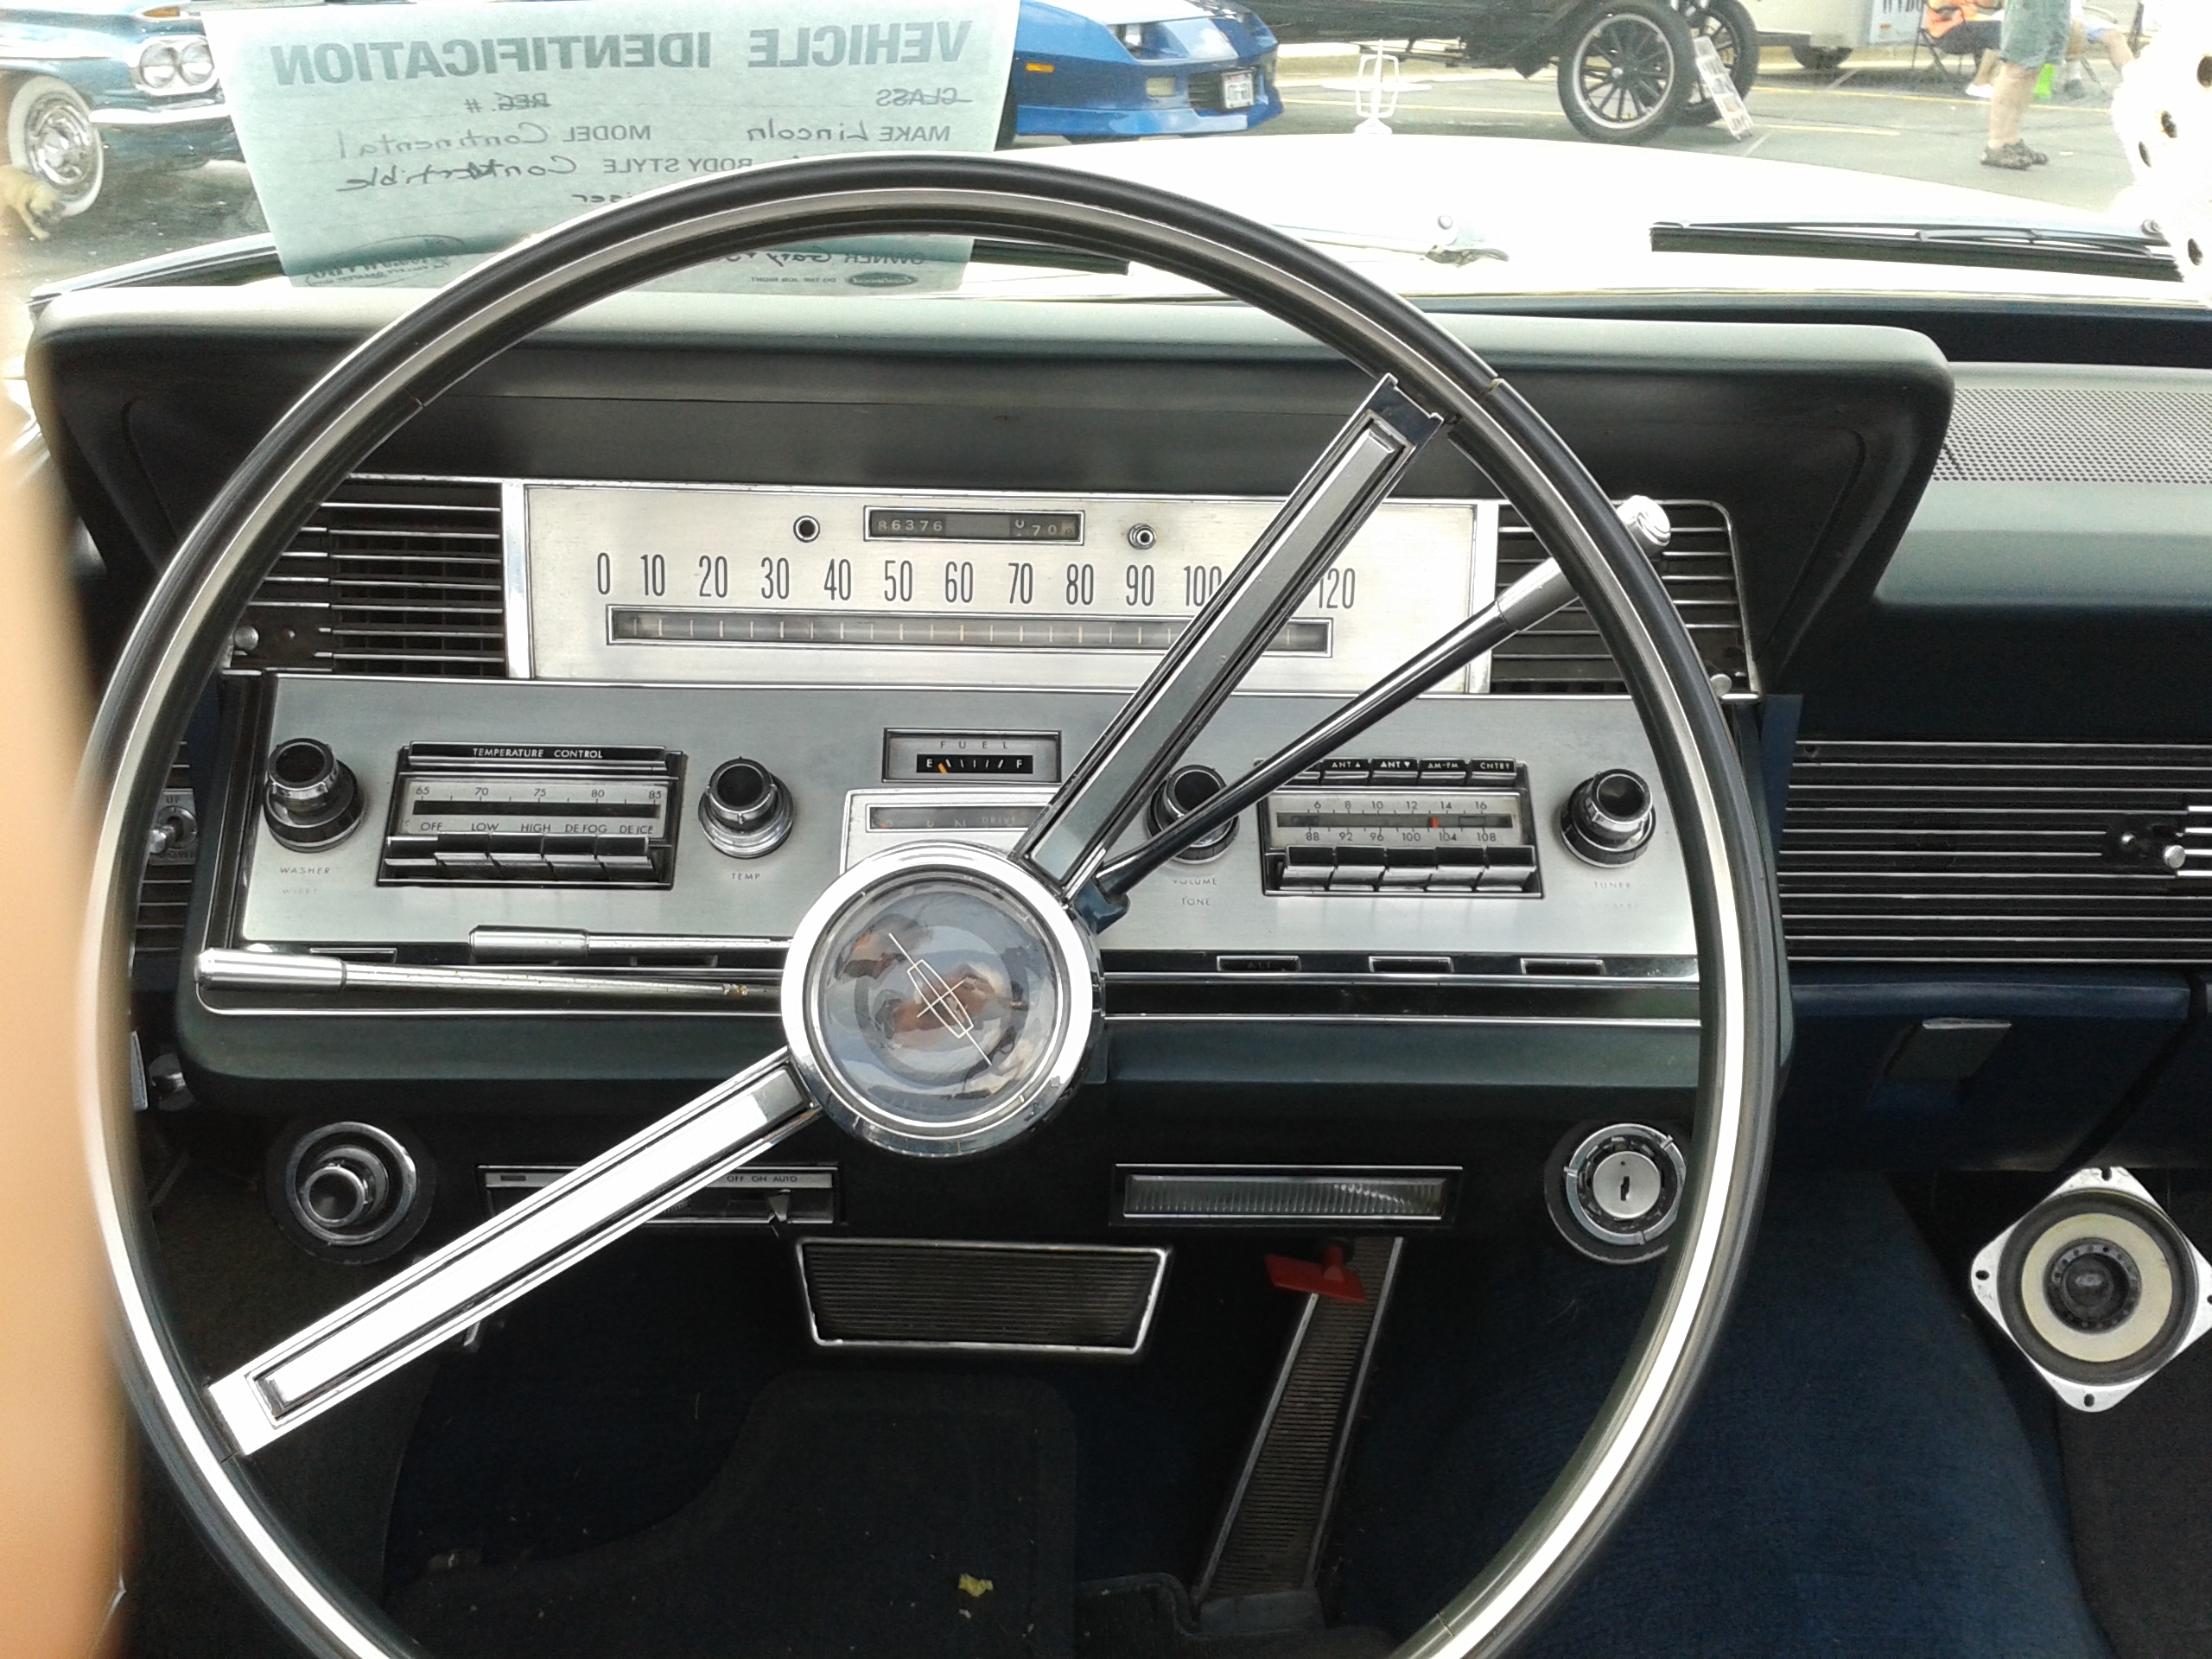 Car Show Find 1966 Lincoln Continental In The Badger